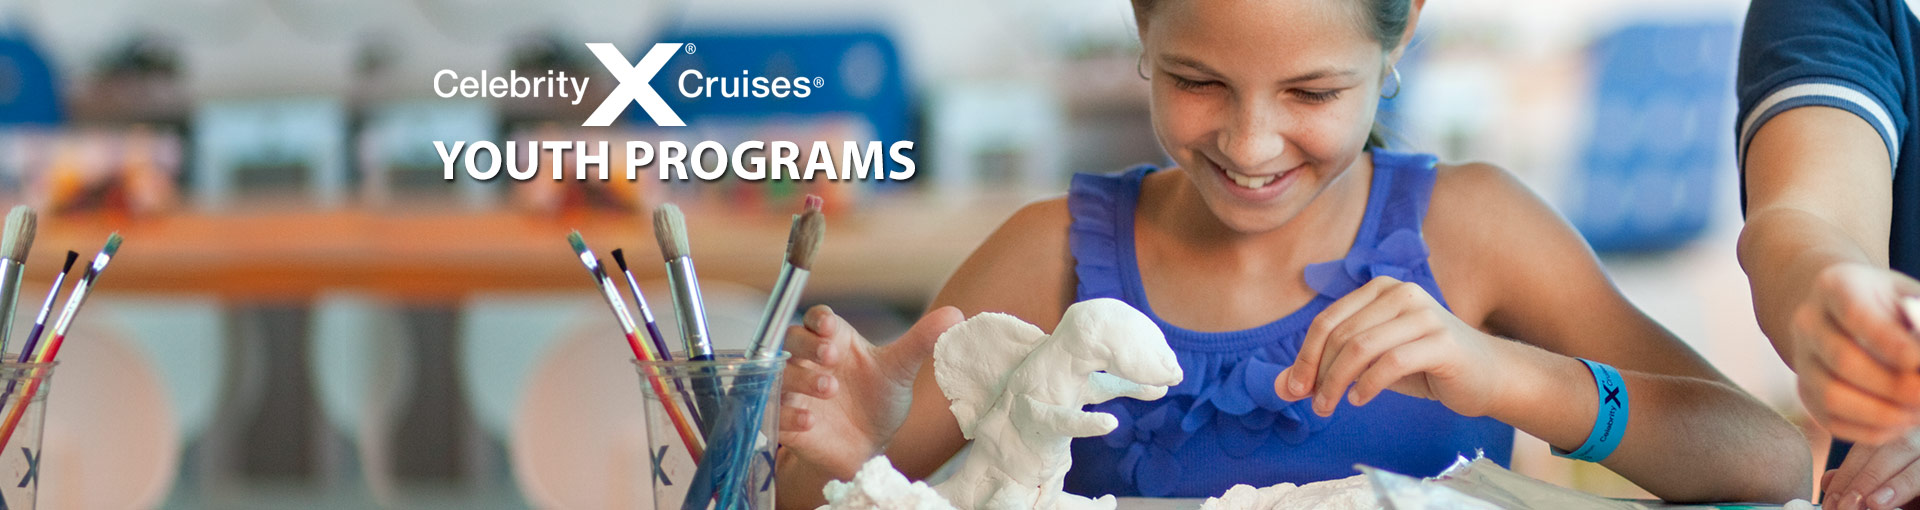 Celebrity Cruises Youth Programs